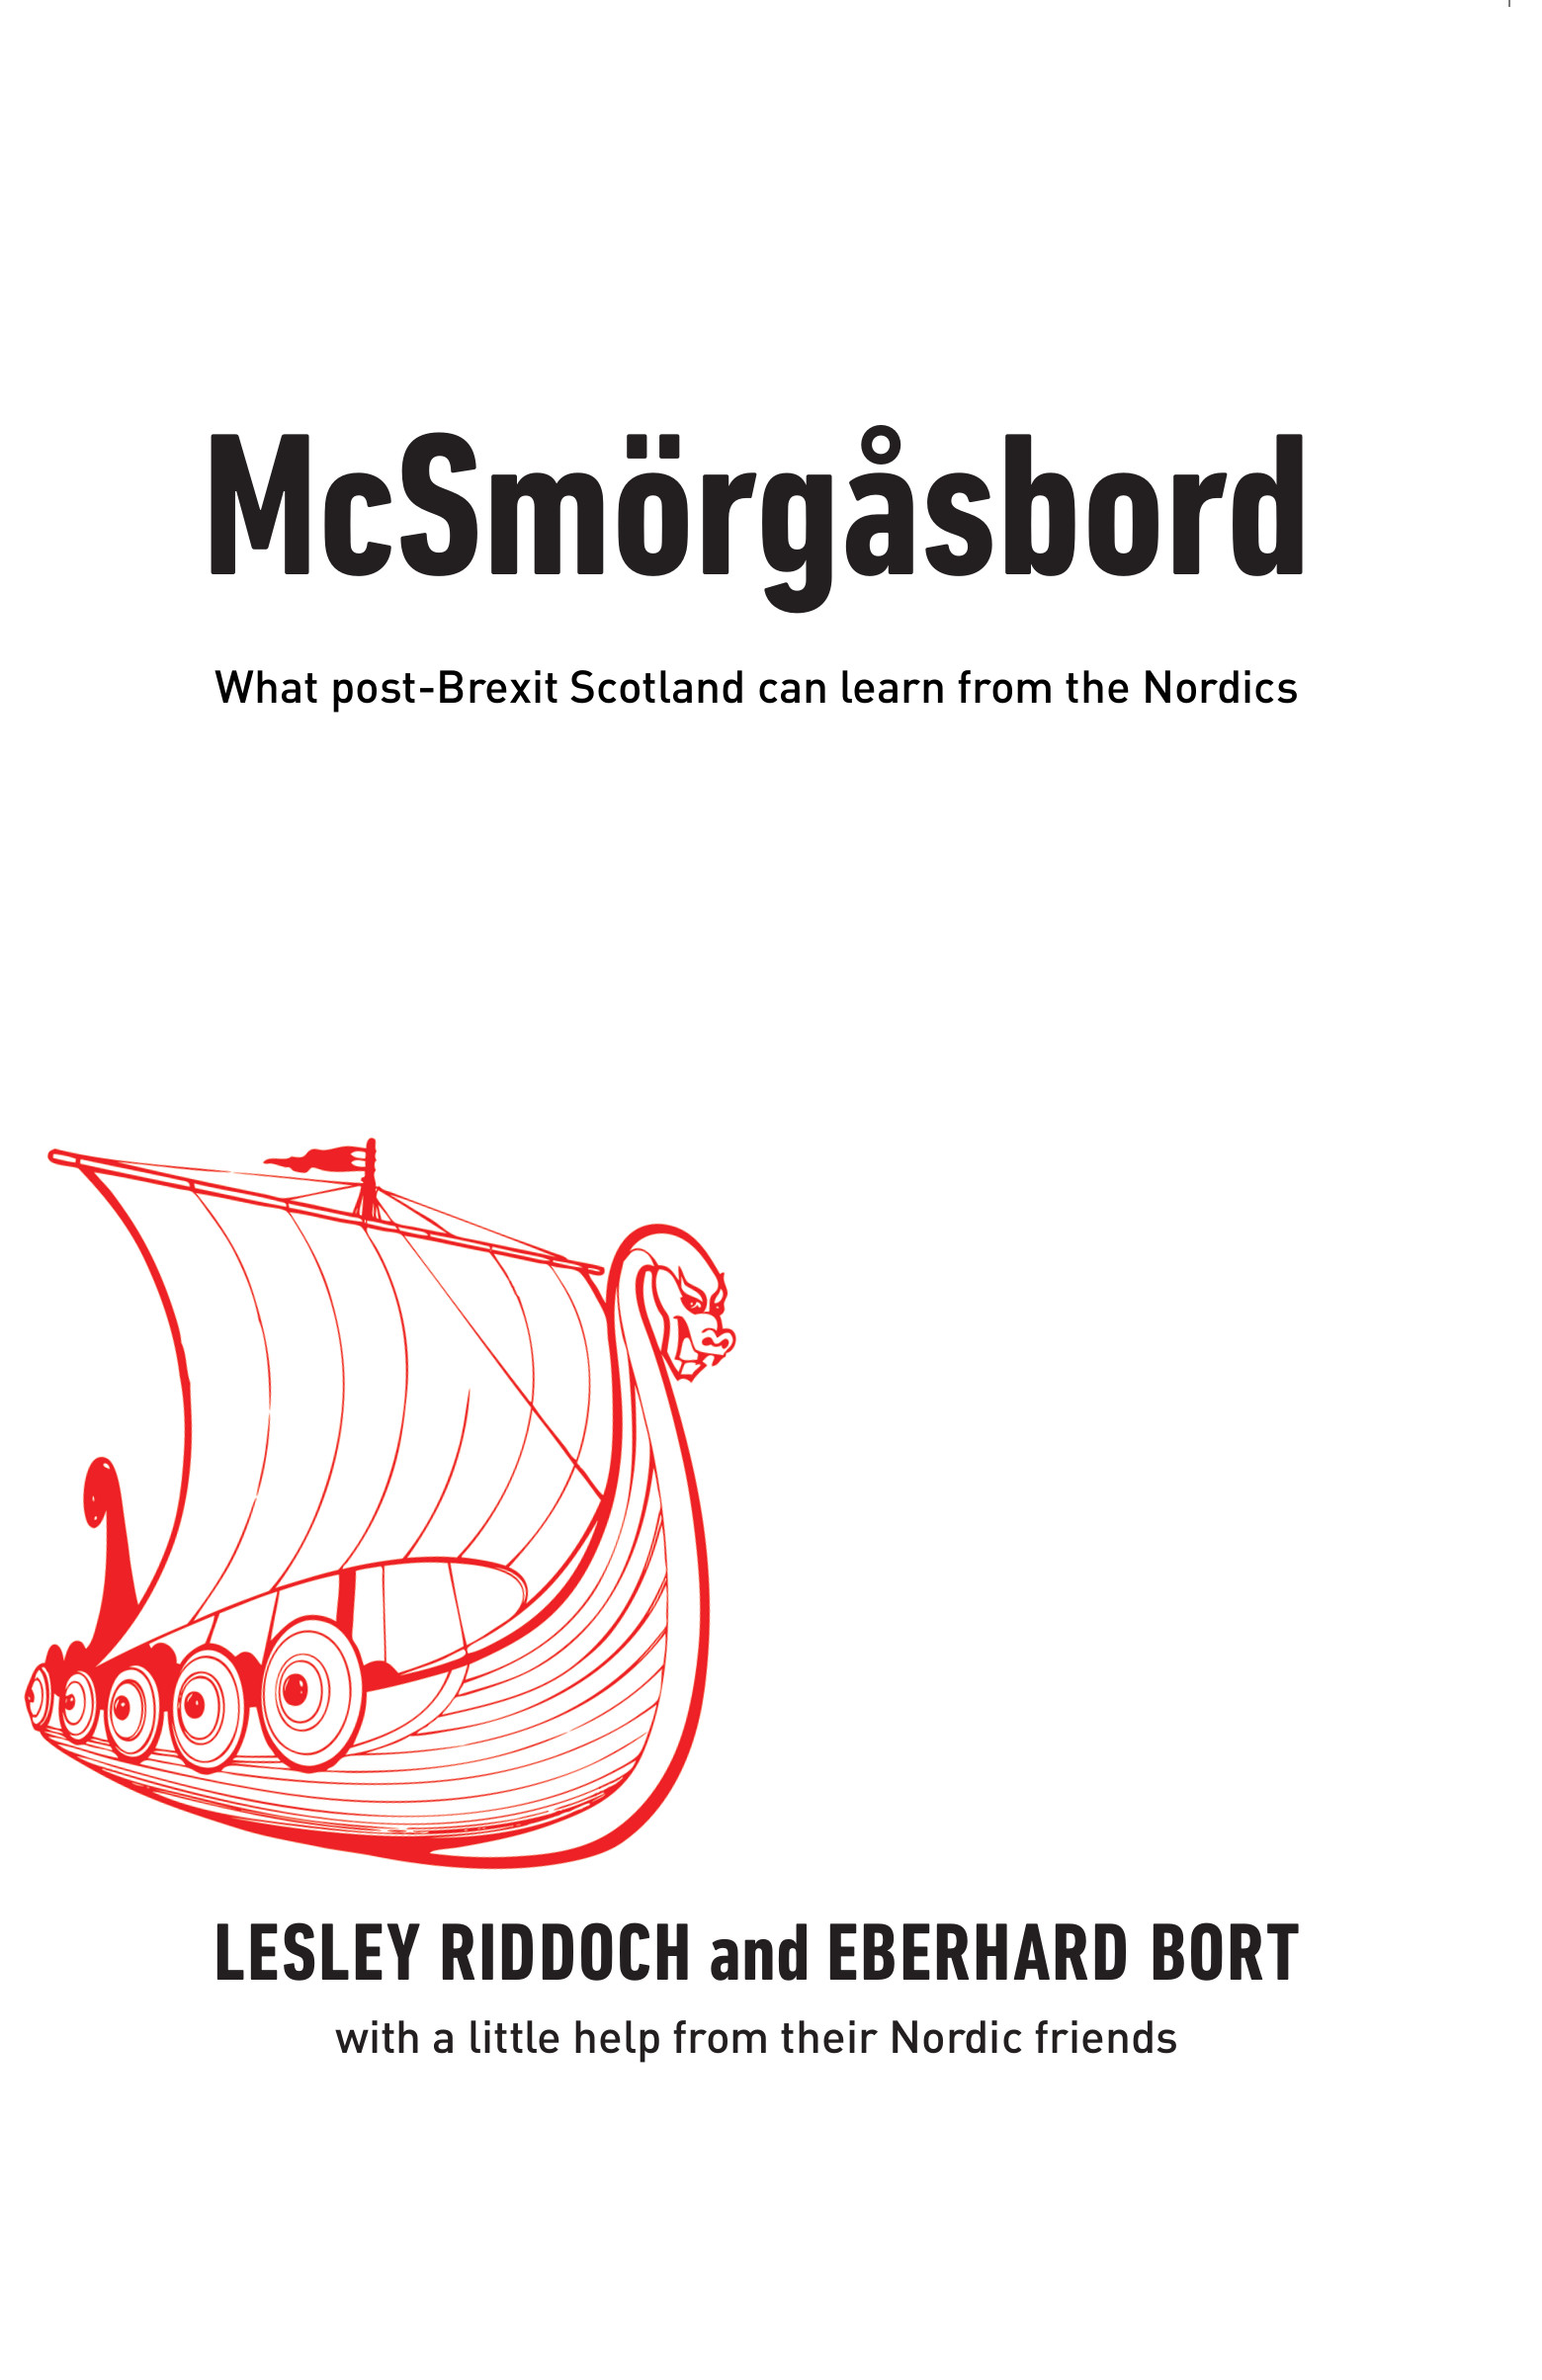 McSmörgåsbord: Nordic Post-Brexit Learnings For Scotland